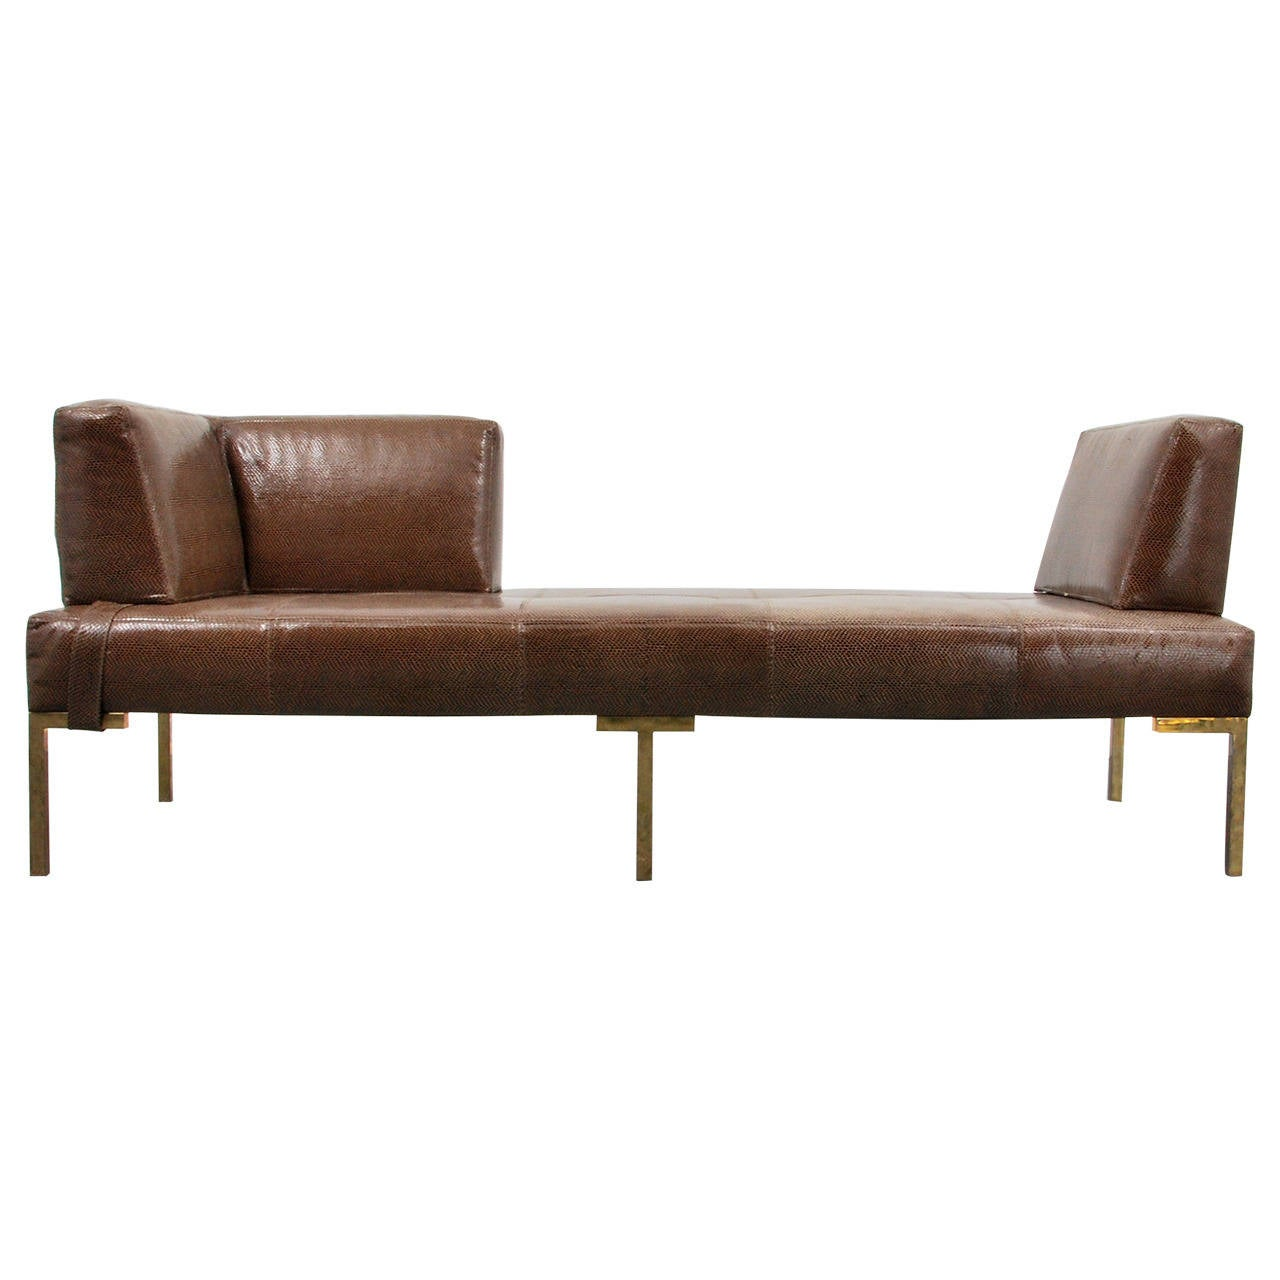 Luigi gentile leather daybeds or chaise lounges two for Chaise leather lounge